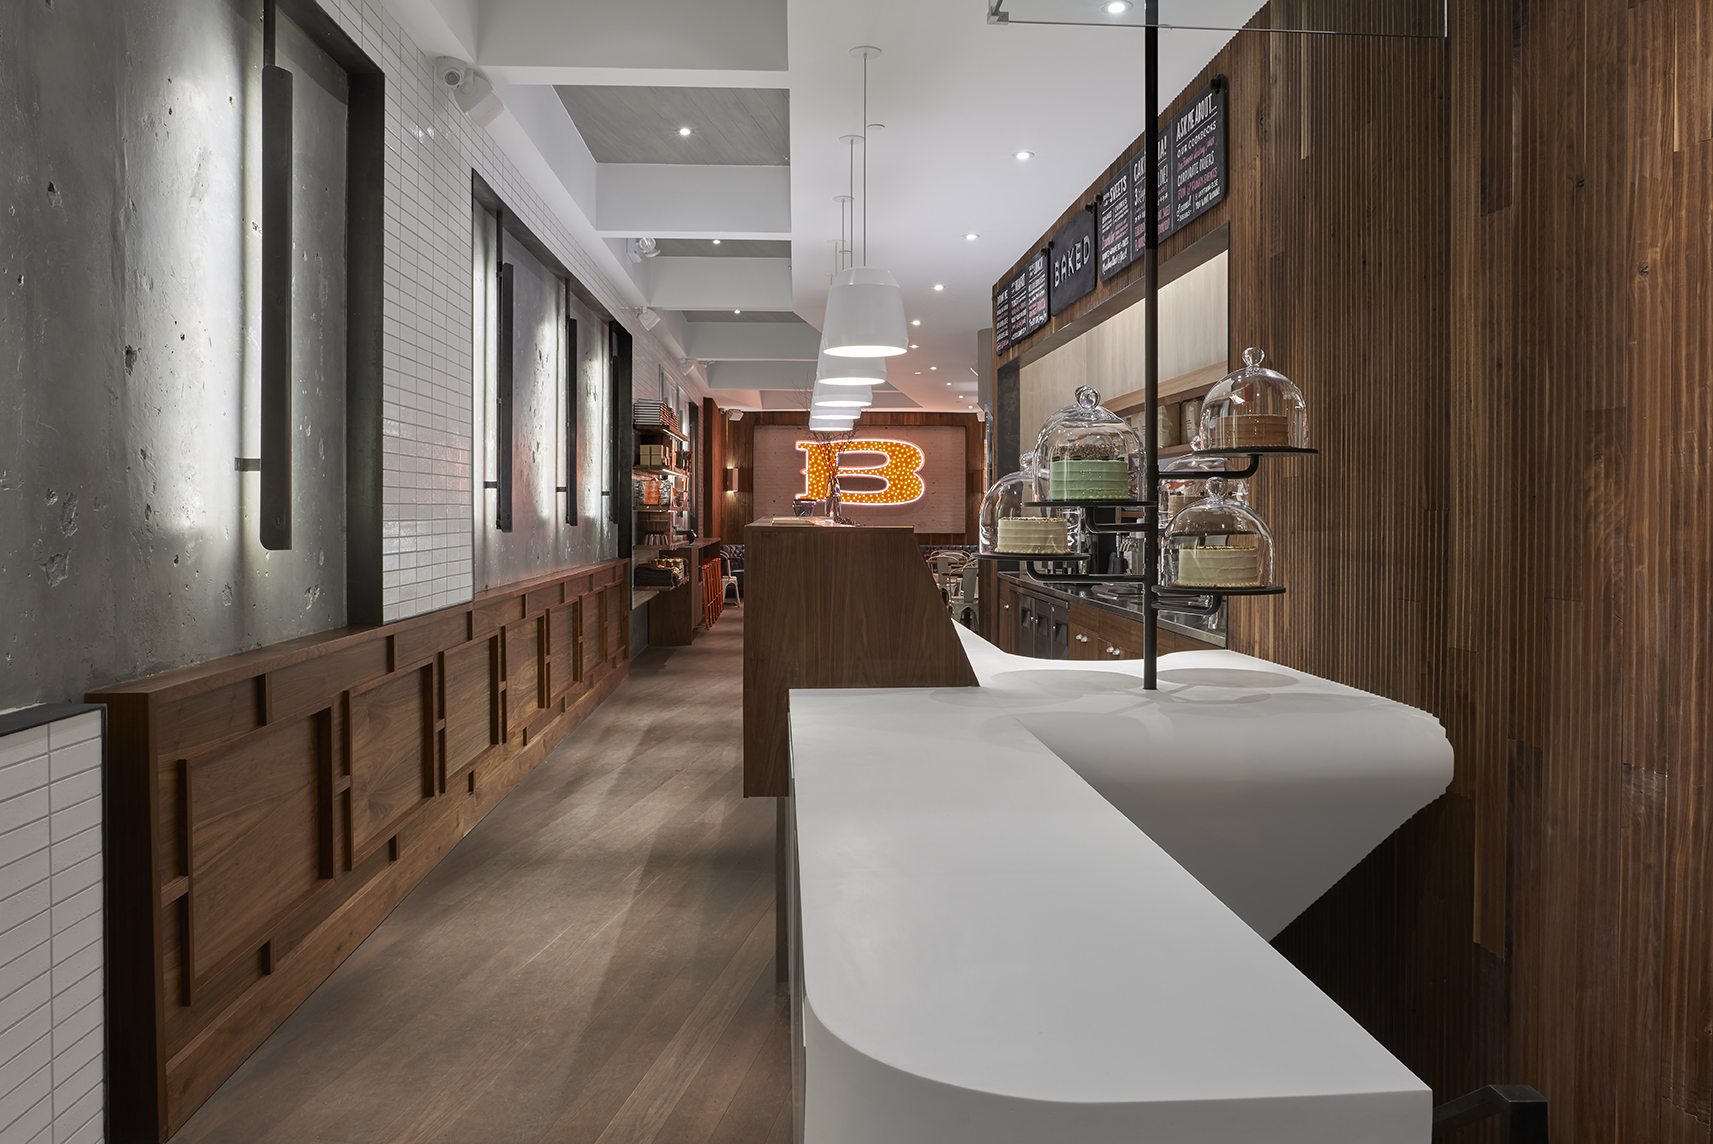 Alternate view of the counter and zone to place orders with a large illuminated B for Baked Tribeca, a bakery restaurant. MEP designed by 2L Engineering.